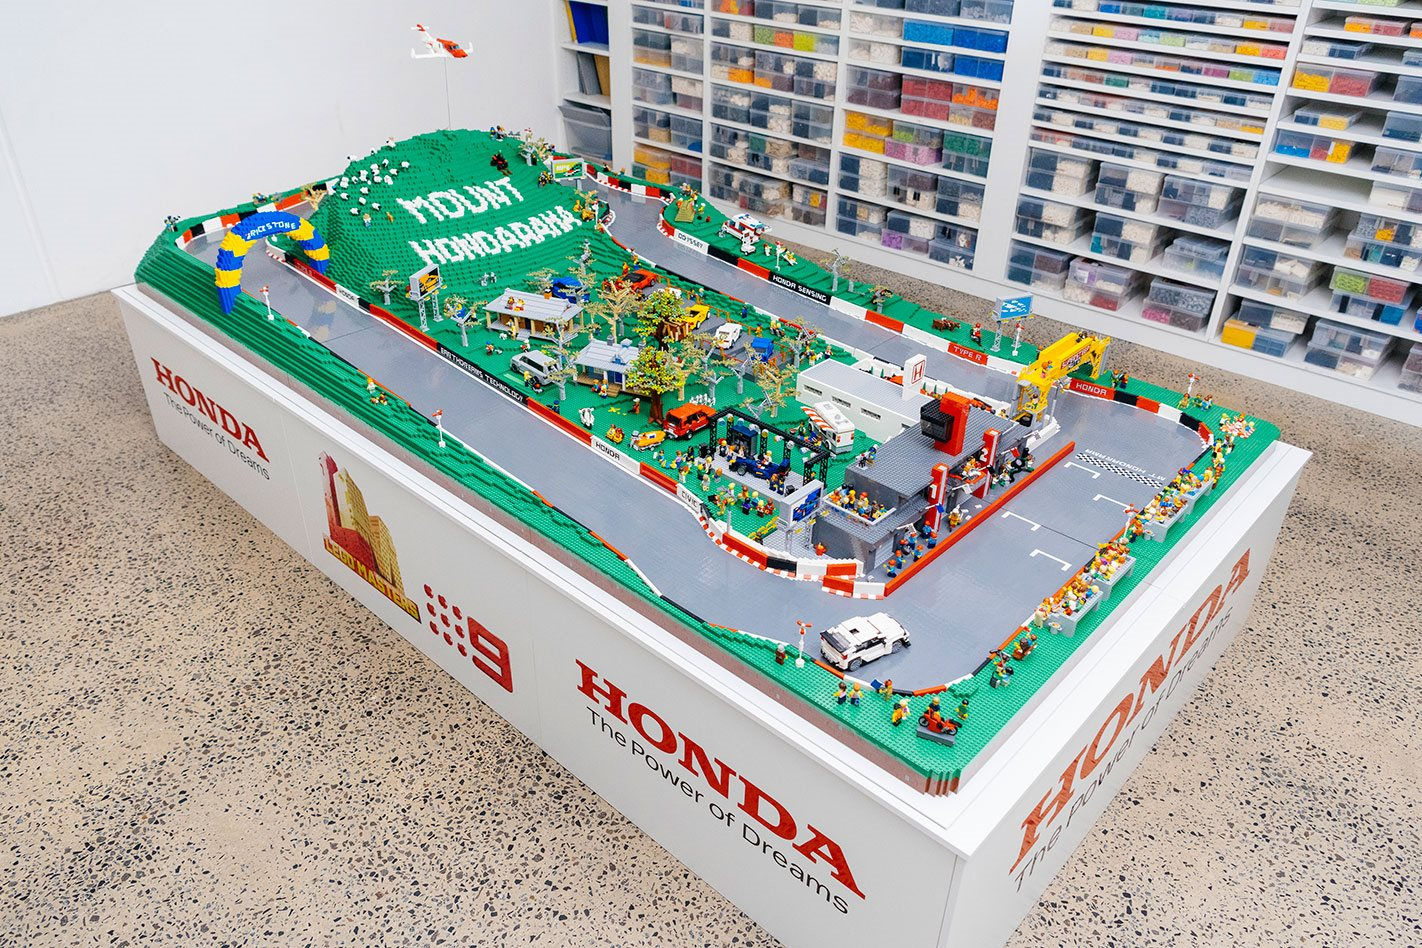 Honda and Brickman build Lego model of Bathurst circuit